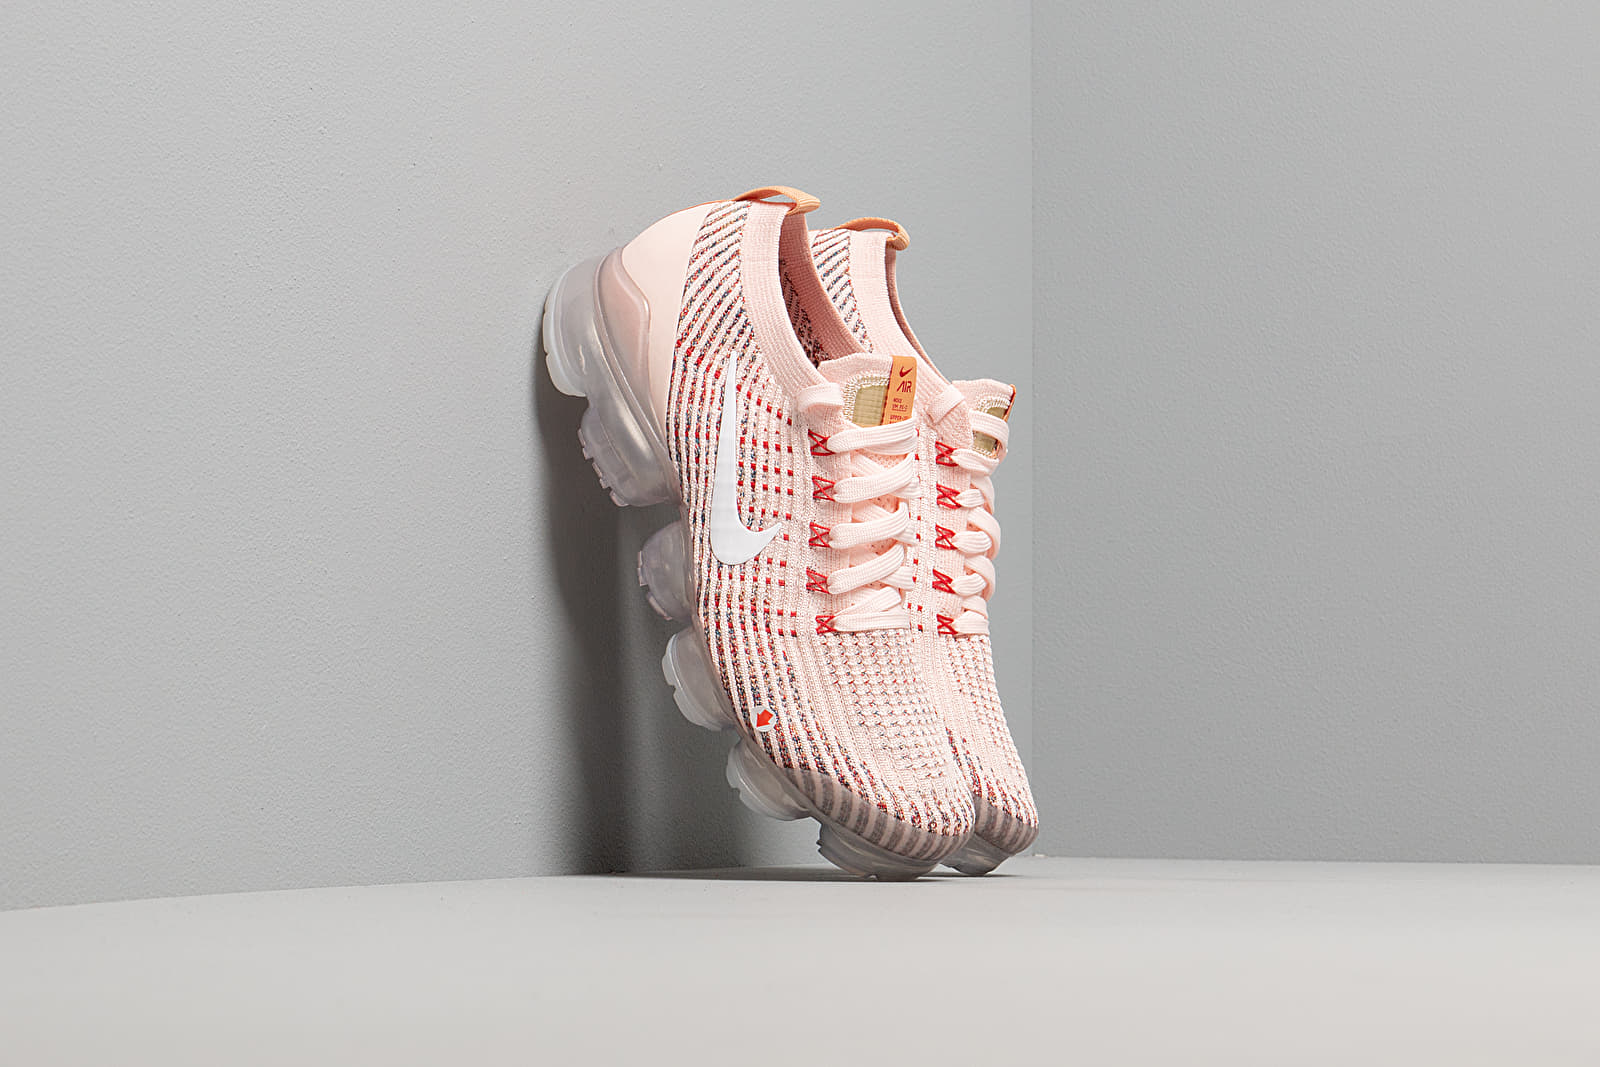 Dámske topánky a tenisky Nike W Air Vapormax Flyknit 3 Sunset Tint/ White-Blue Force-Gym Red